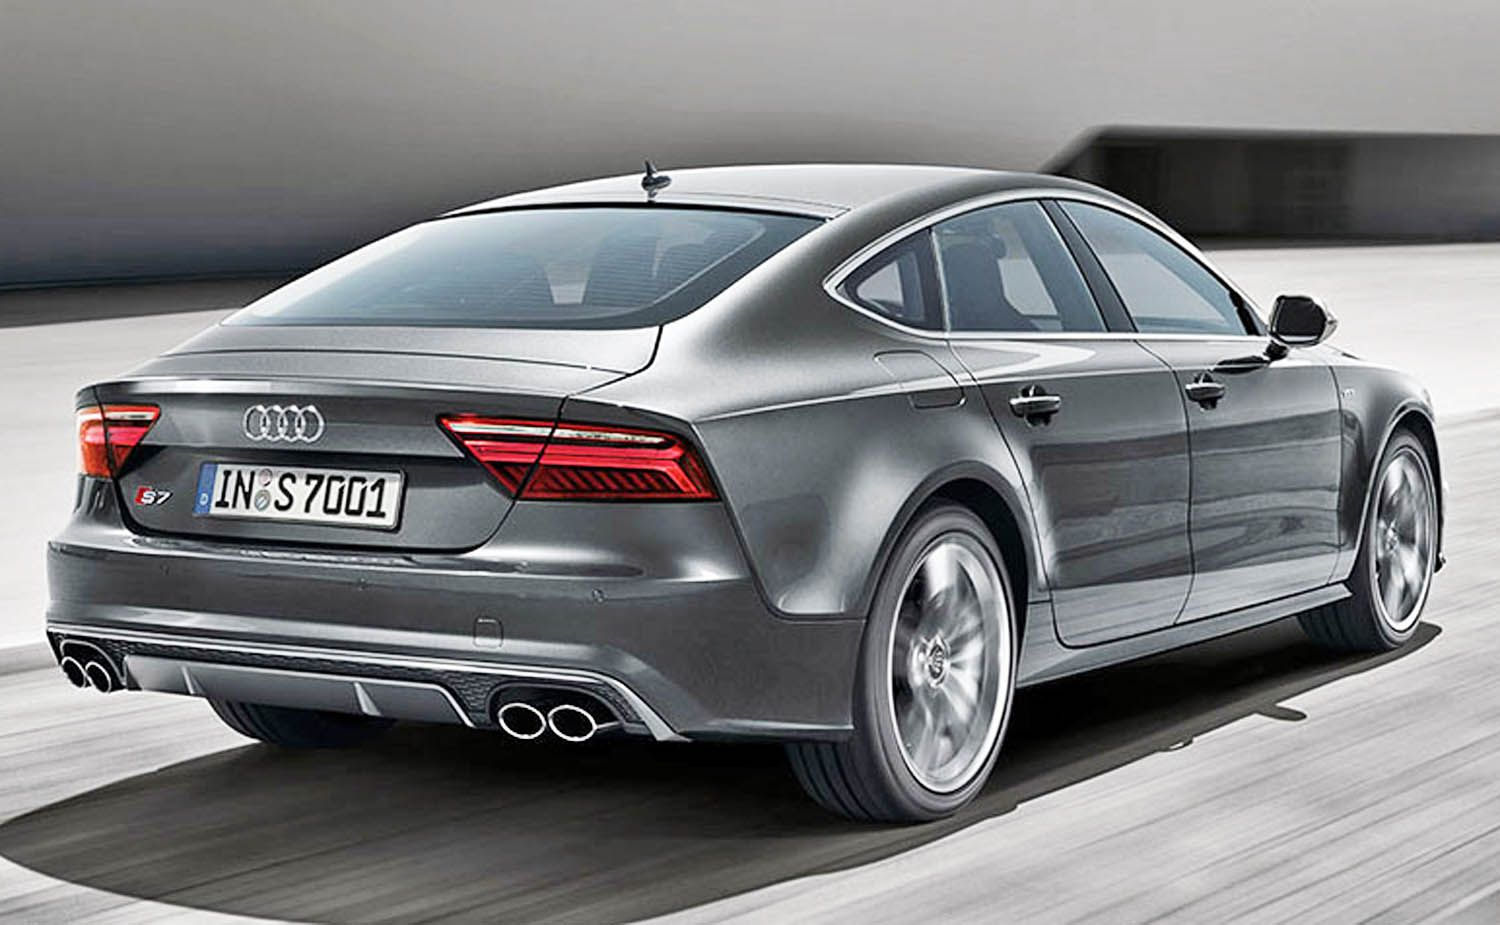 Http Wheelzme Audi S7 Sportback 7 Automobile Explore A7 Auto News And More